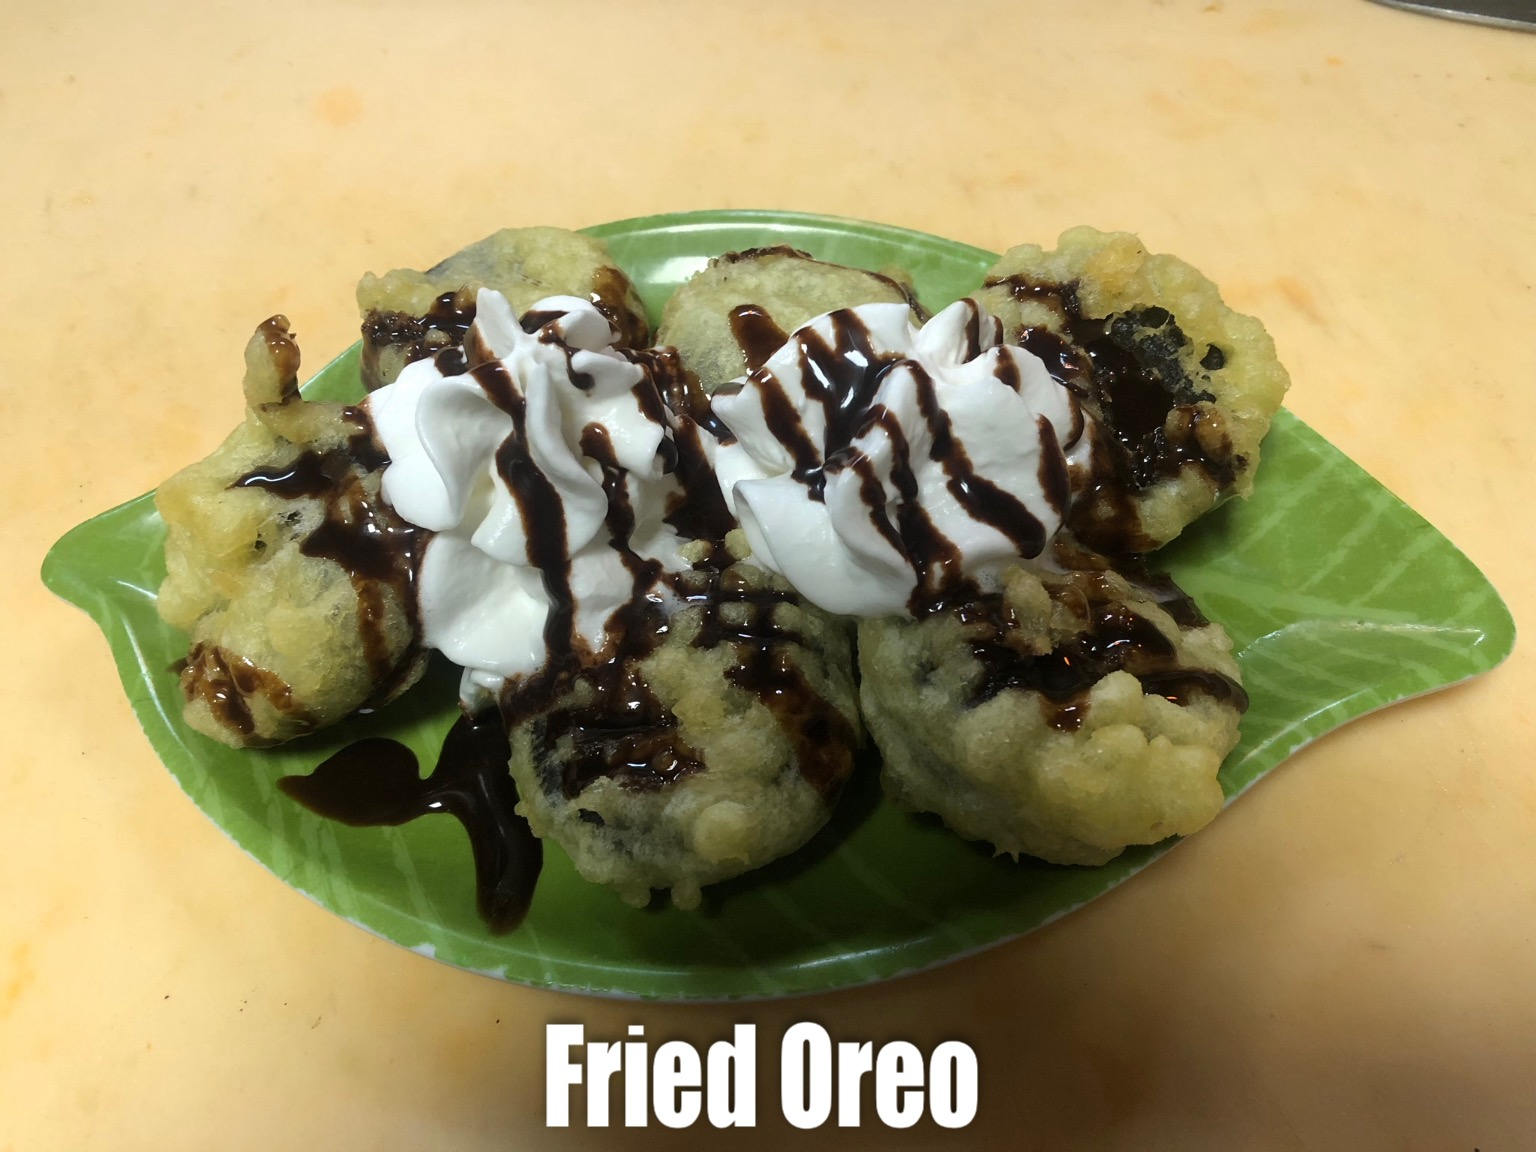 Fried Oreo Image